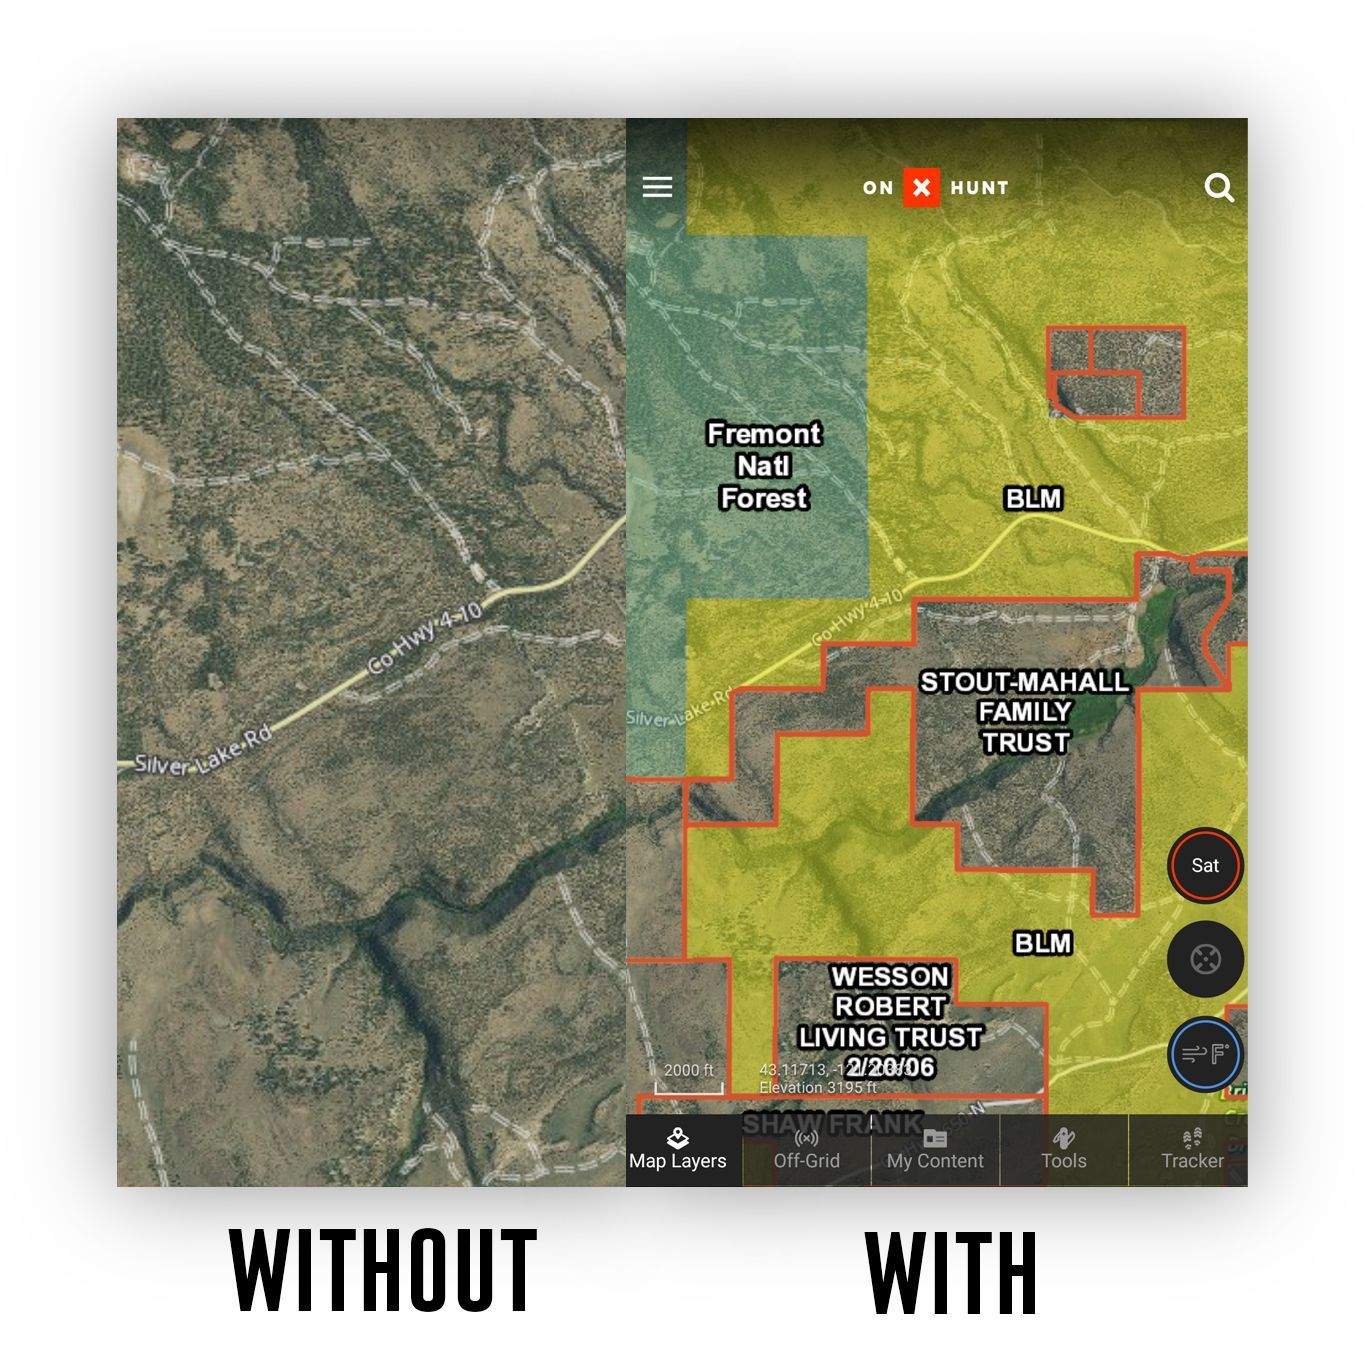 Oregon-Hunting-Maps-With-Without-onX-Hunt.jpg?mtime=20200528095555#asset:83397